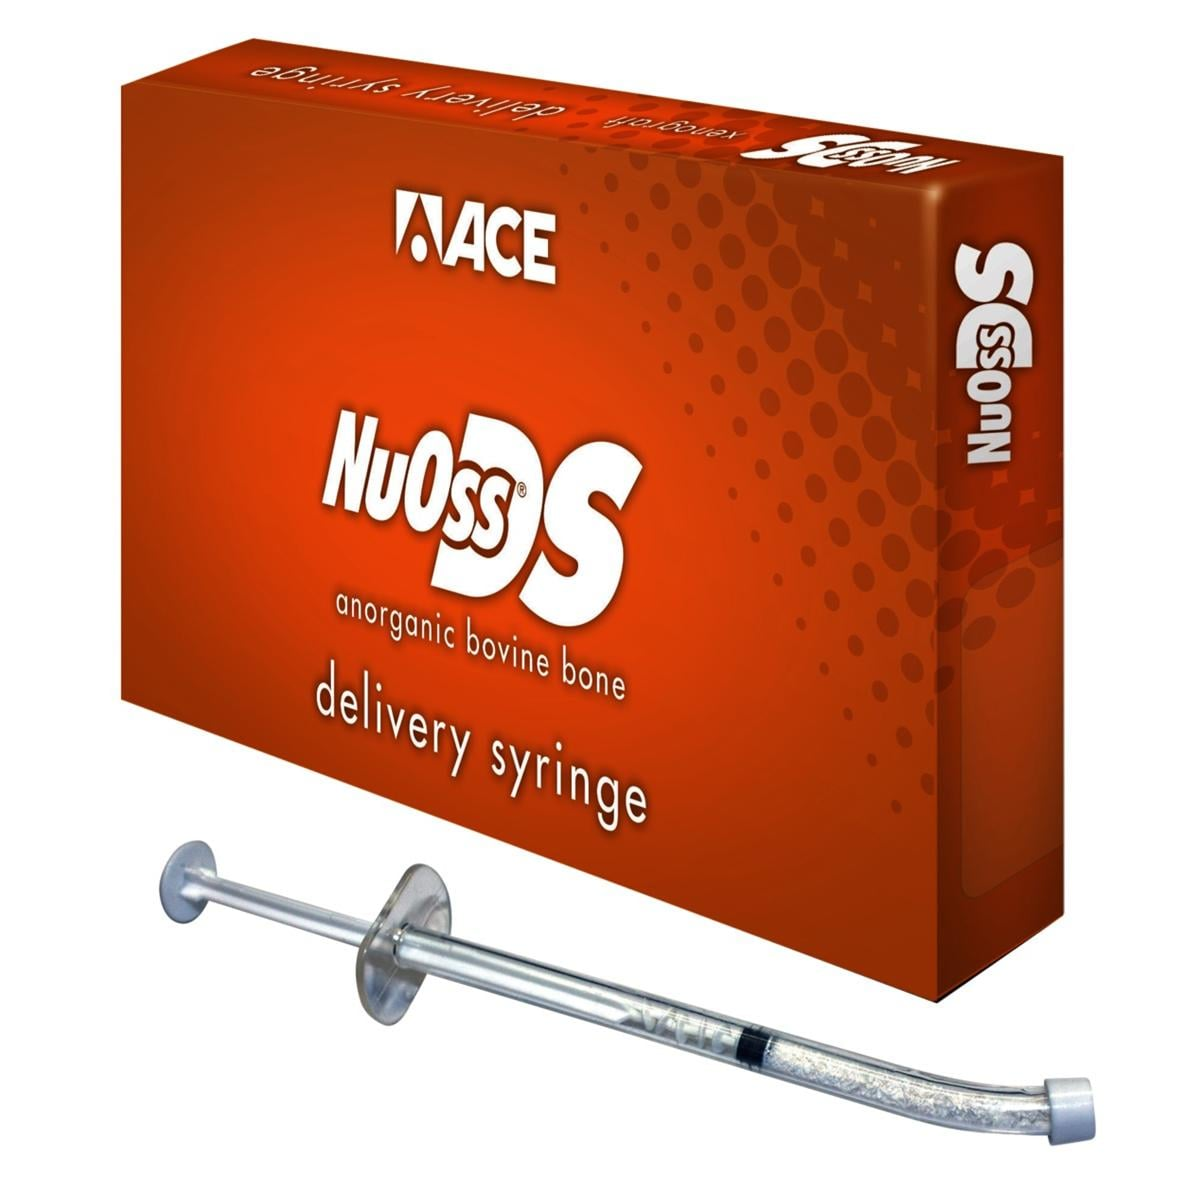 NuOss DS Delivery Syringe 0.25-1mm 0.50cc